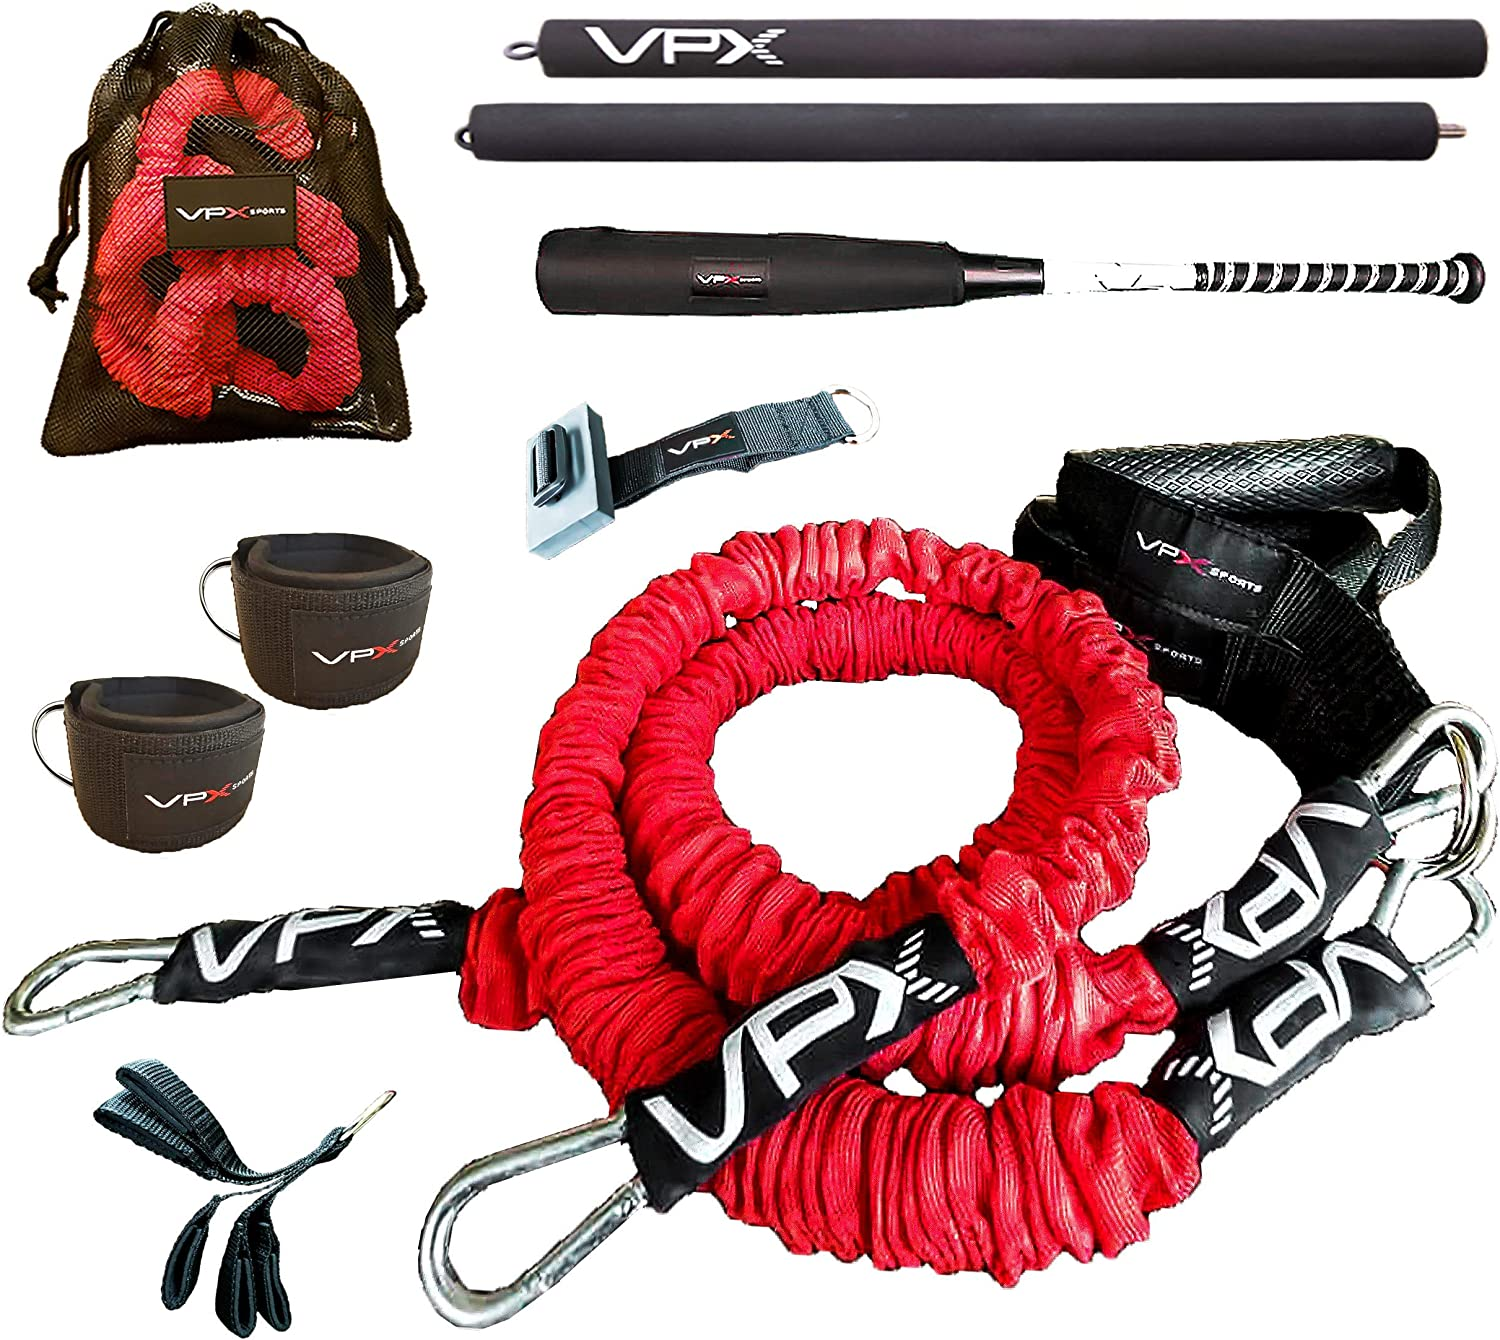 VPX Resistance Bands Set | 3-way Customized Total Body Workout System | Tutorials & Program | Strength, Home Gym, Arm care, Baseball, Softball, Fitness, Volleyball, Quarterbacks, Yoga, Pilates